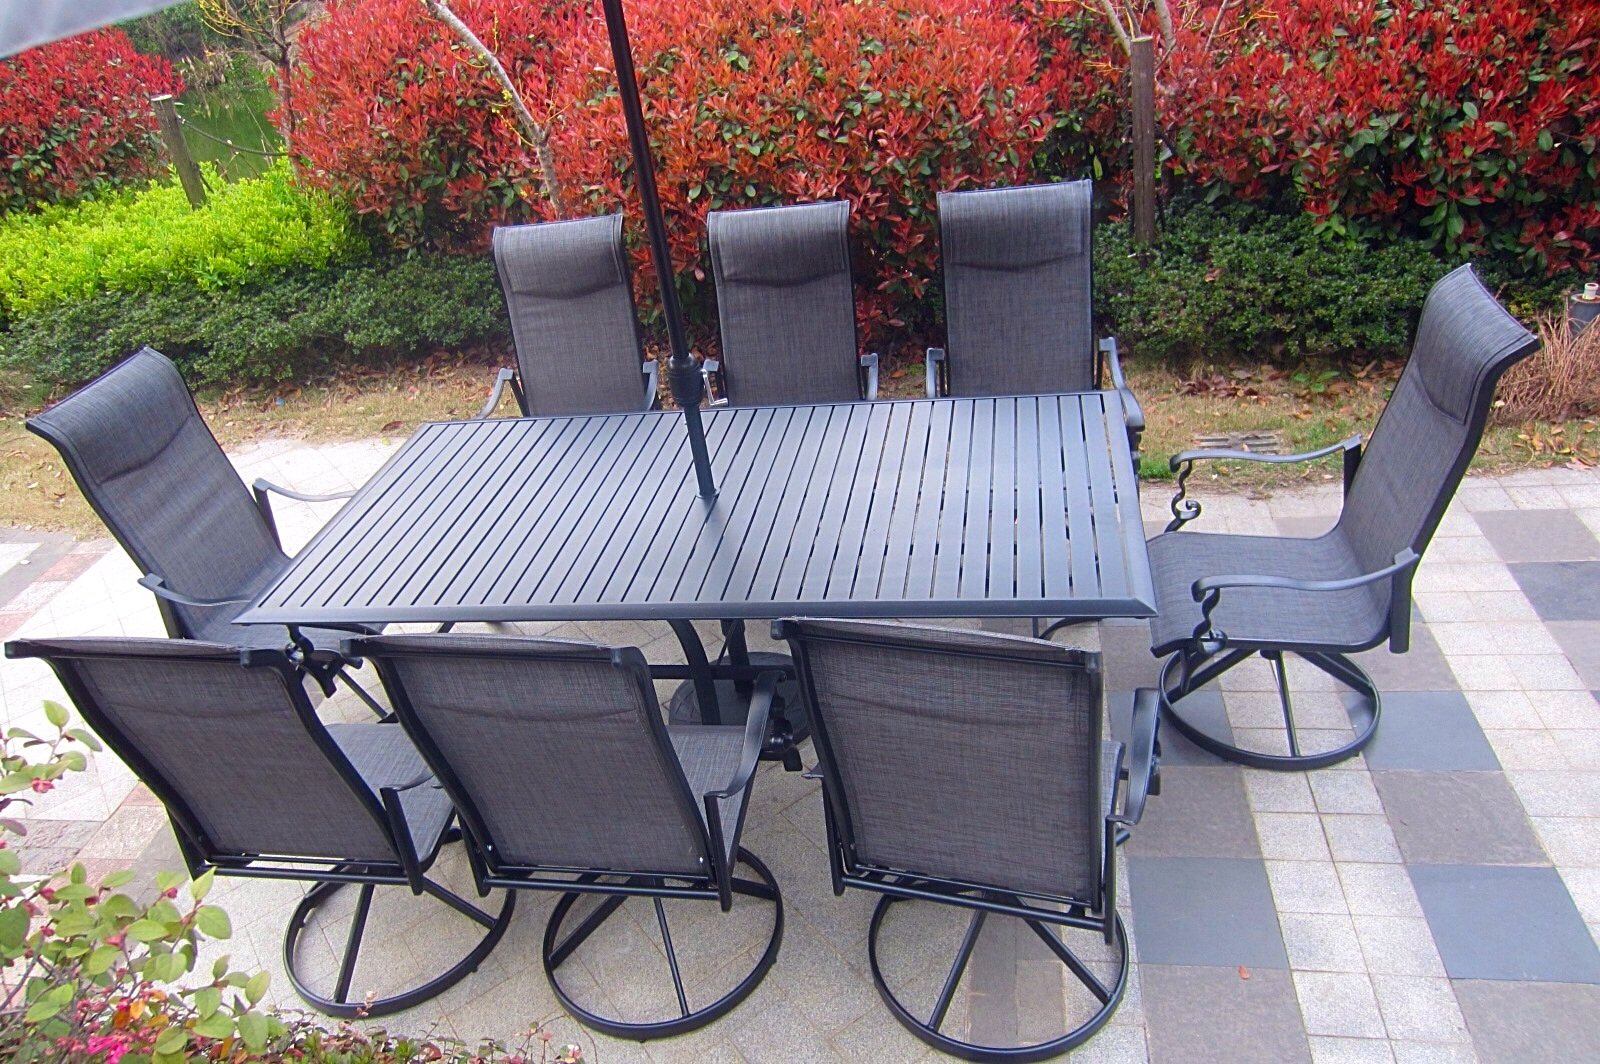 """Pebble Lane Living All Weather Rust Proof Indoor/Outdoor 9 Piece Cast Aluminum Patio Dining Set, 1 Slat Top Dining Table & 8 Swivel Rocking Dining Chairs with Padded Headrest, Black - 8 Cast Alumiunum Swivel Rocking Dining Chairs : 41"""" H x 30"""" D x 27"""" W 1 Aluminum Slat Top Dining Table : 82"""" x 42"""" x 29"""" Rectangle Grey Patio Umbrella IS NOT INCLUDED - patio-furniture, dining-sets-patio-funiture, patio - 81a9BoRBU L -"""